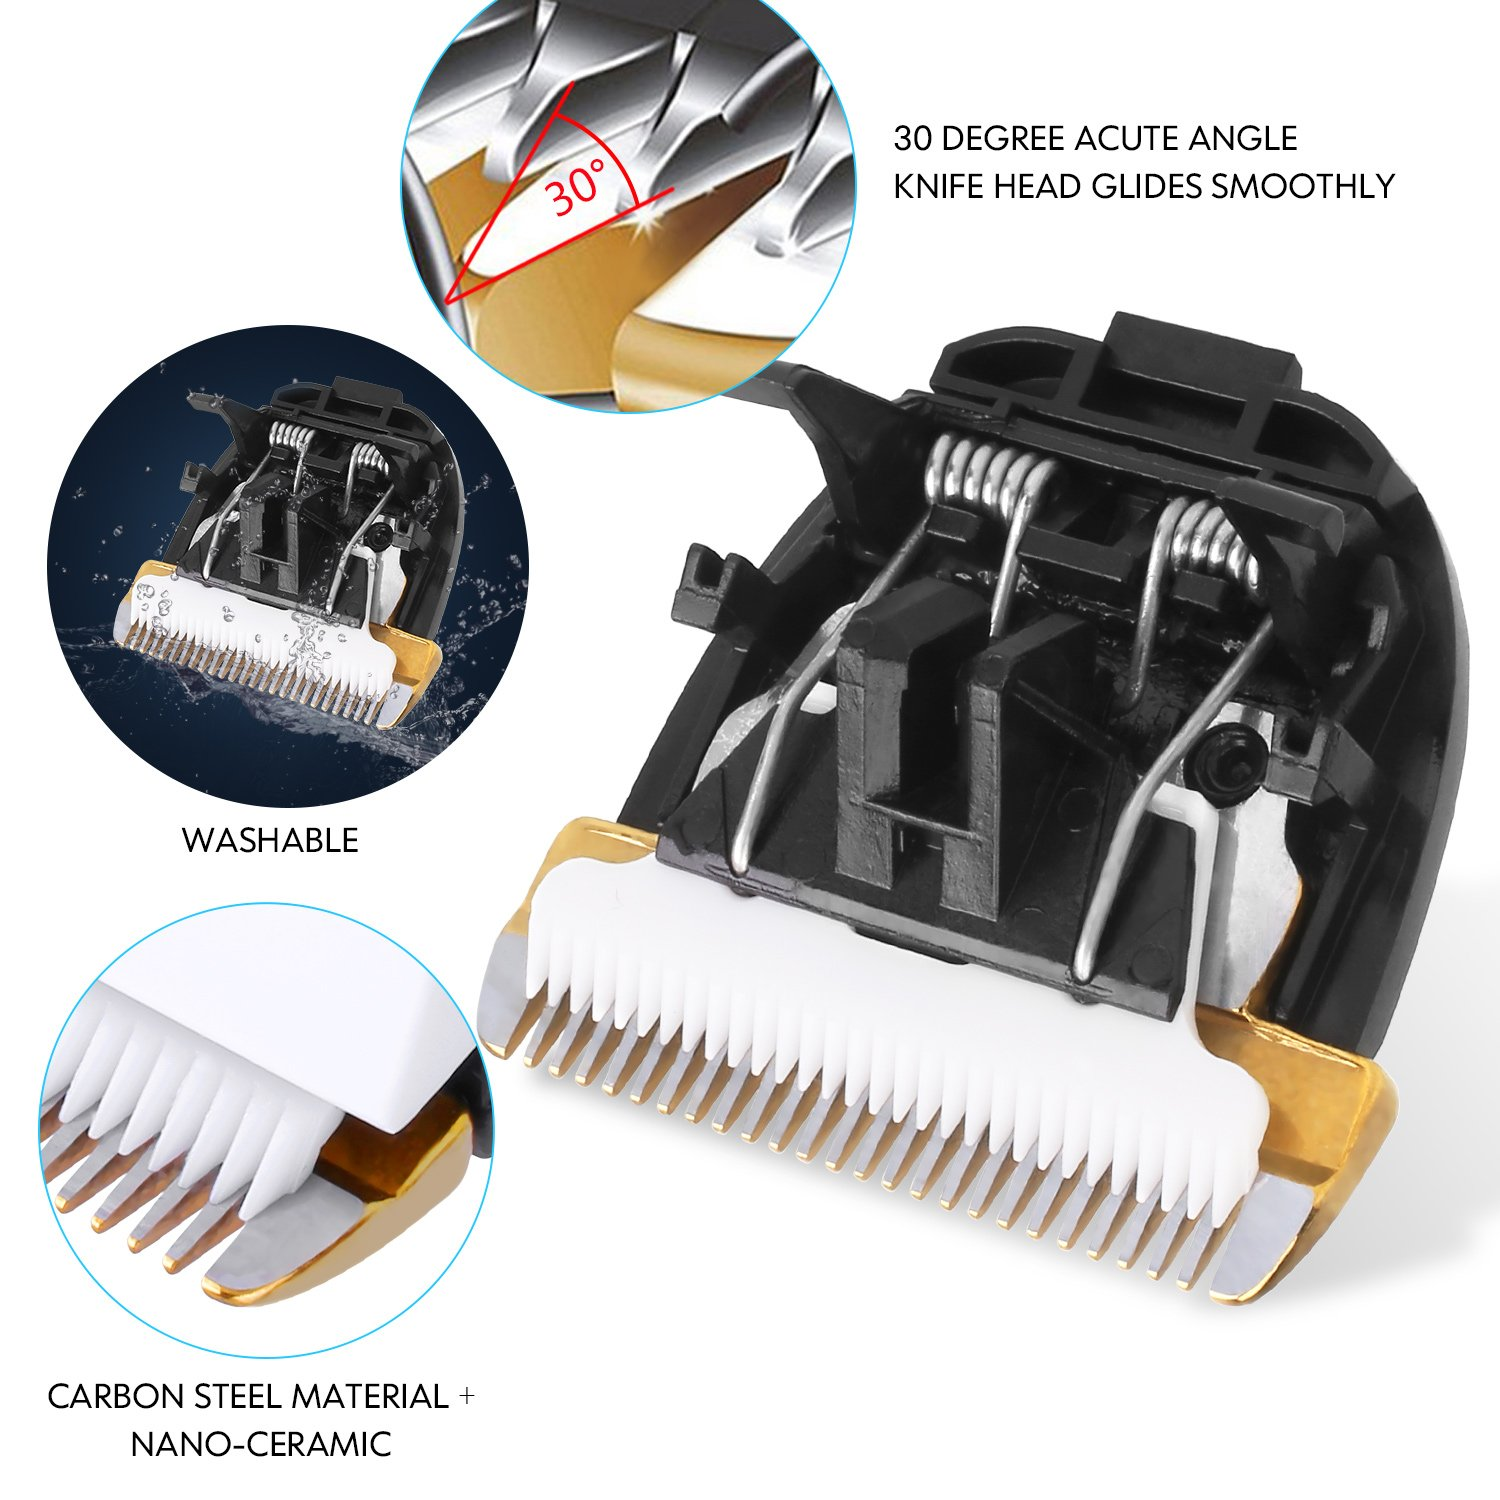 Dog Grooming Clippers Professional Pet Clipper Trimmer Kit Silent Cordless Rechargeable Low Noise for Dogs Cats Horses Animal, 480 Minutes Life, 5 LED Indications